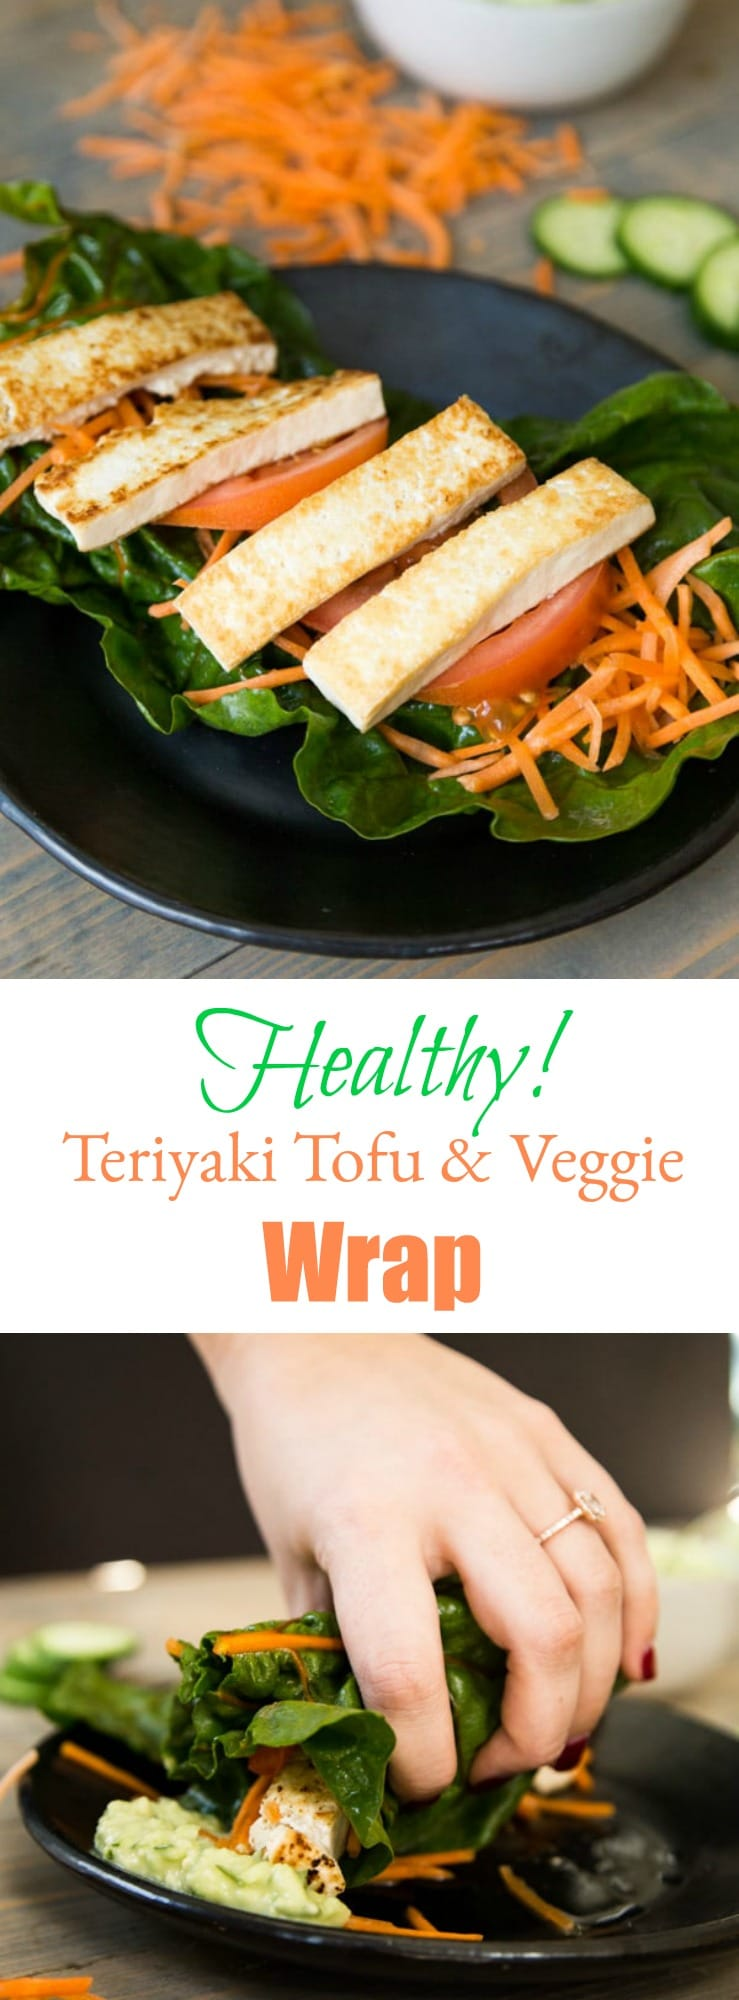 Our crunchy, creamy, and healthy baked tofu and veggie wrap is easy to make and delicious! The perfect fast and easy dinner or lunch. #vegan #tofu #wrap